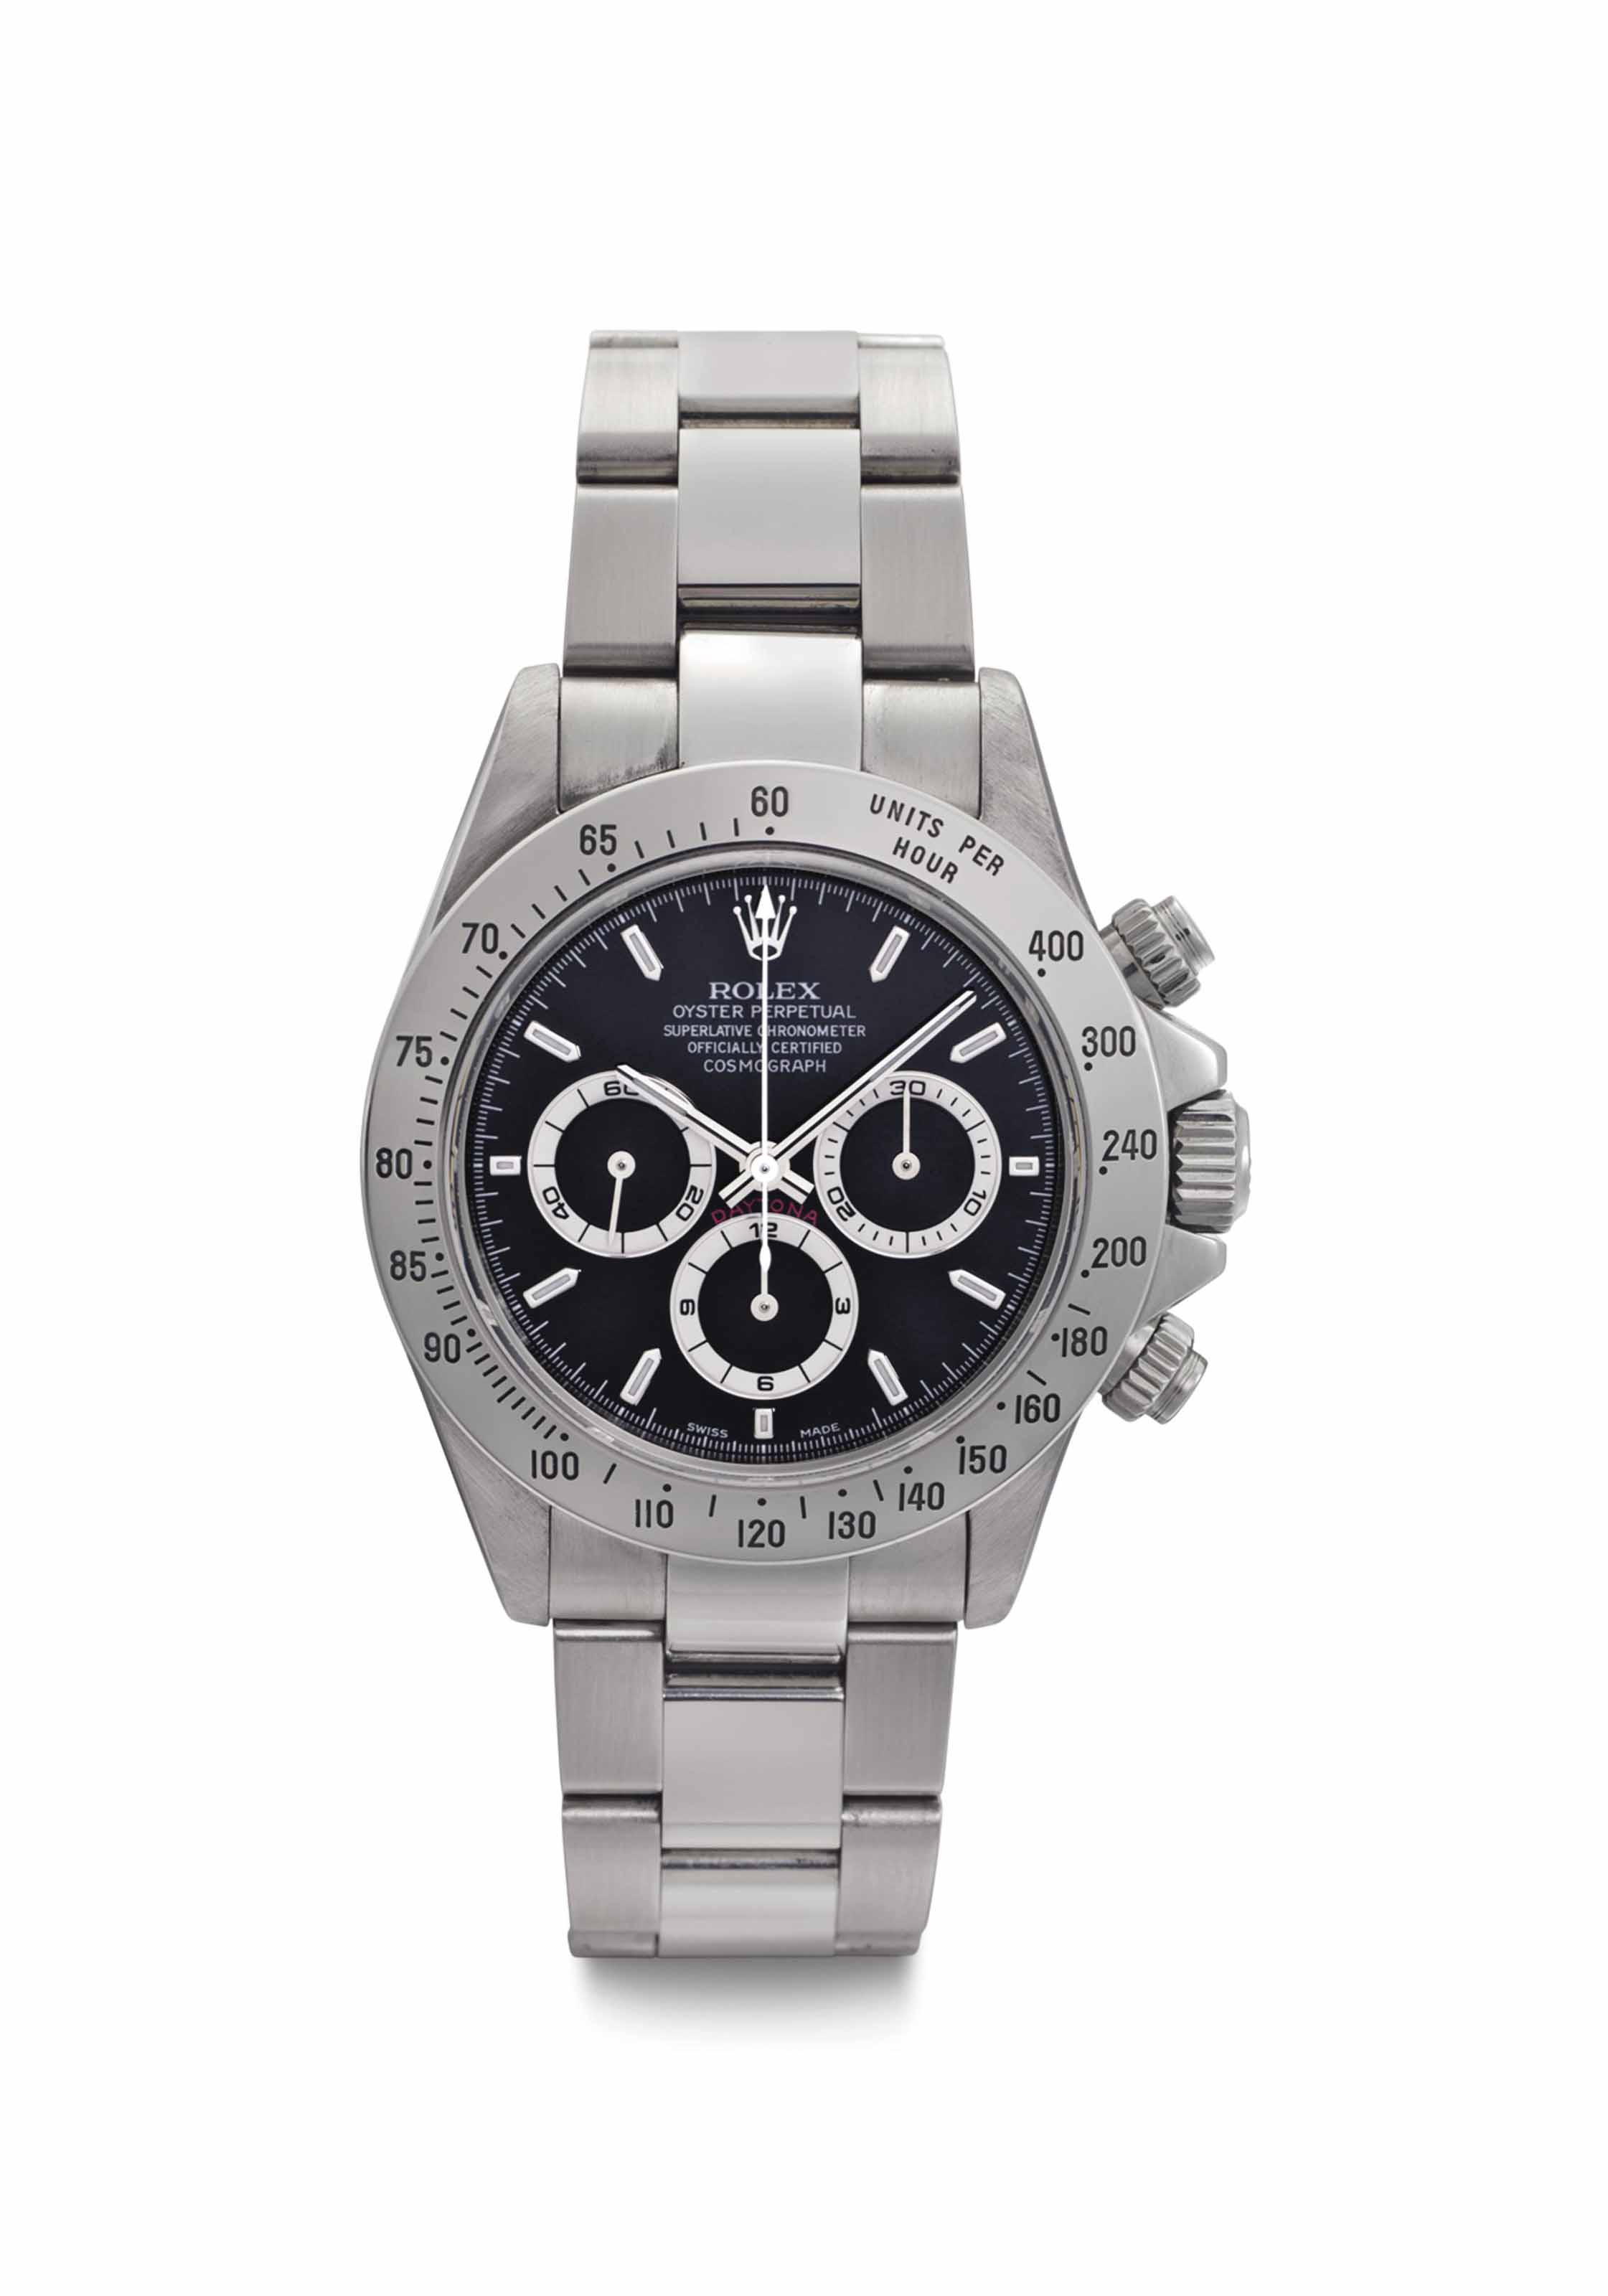 Rolex. A Fine and Rare Stainless Steel Chronograph